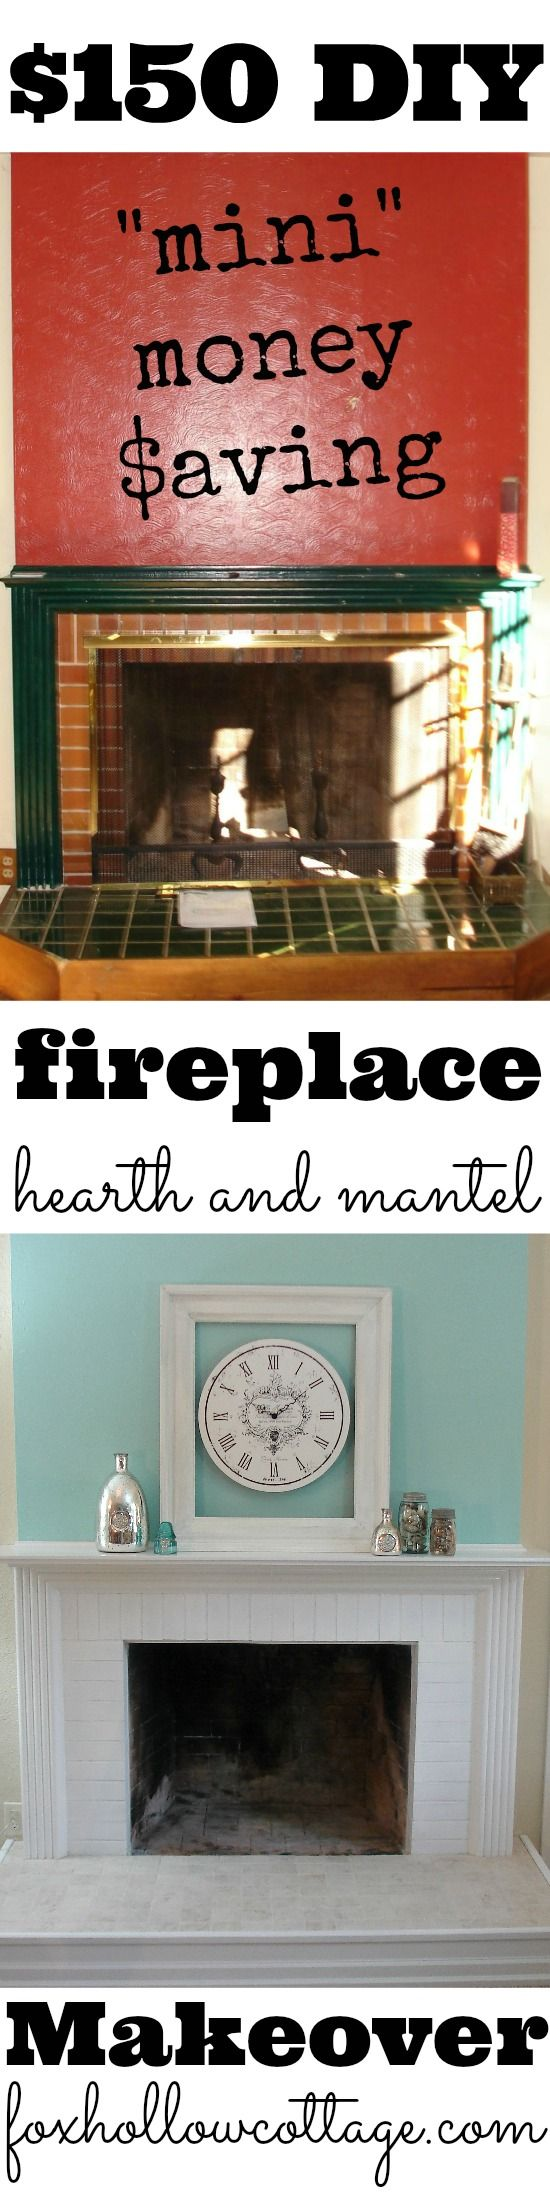 Budget DIY Fireplace Hearth and Mantel Makeover www.foxhollowcott...